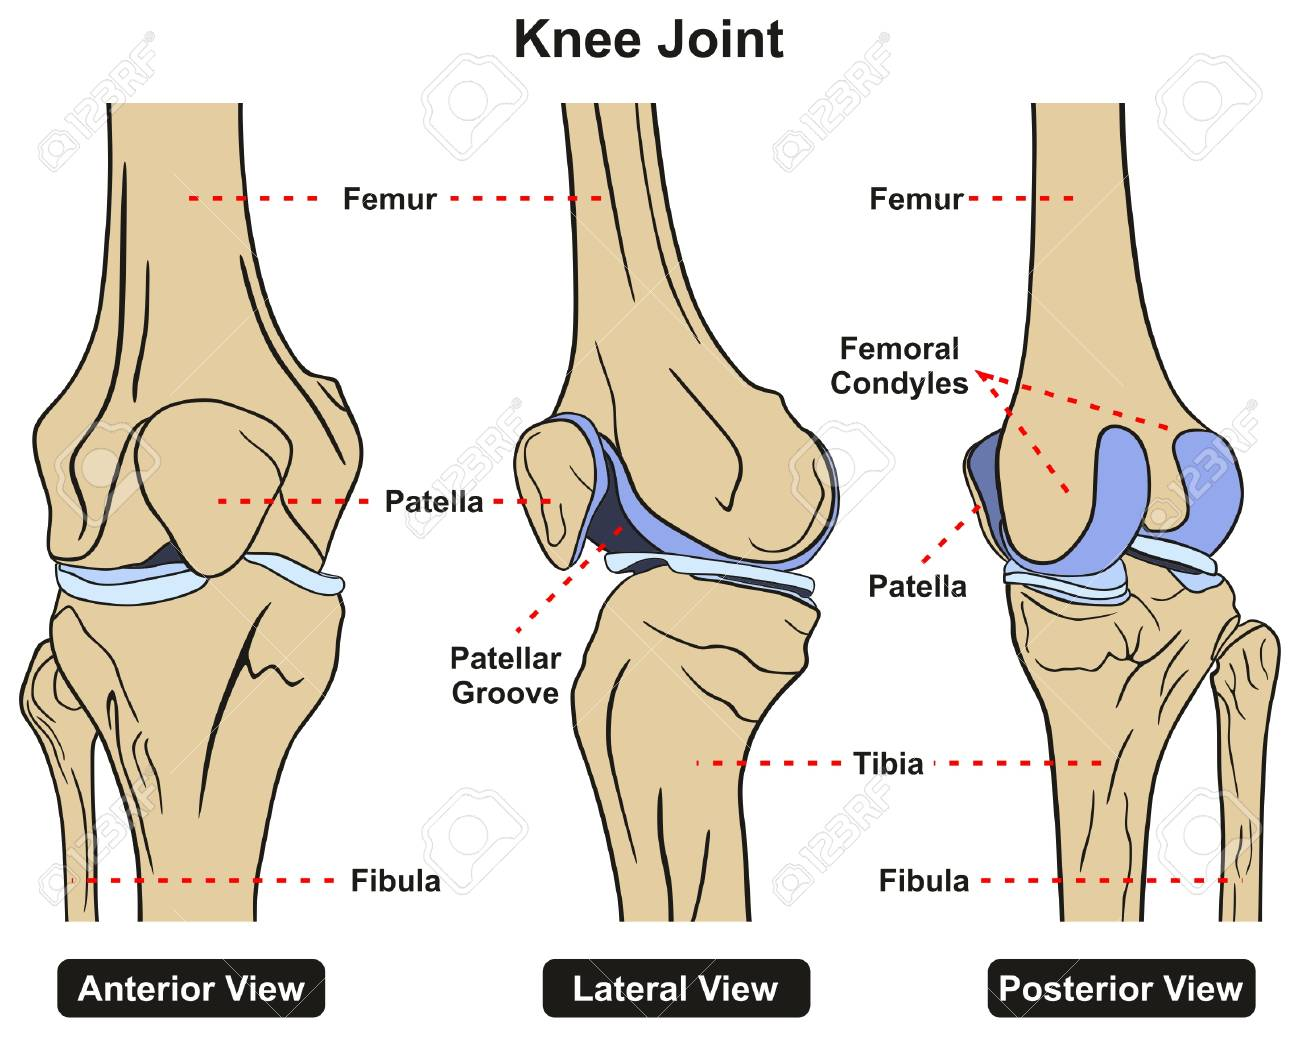 Knee Joint Of Human Body Anatomy Infographic Diagram Including ...